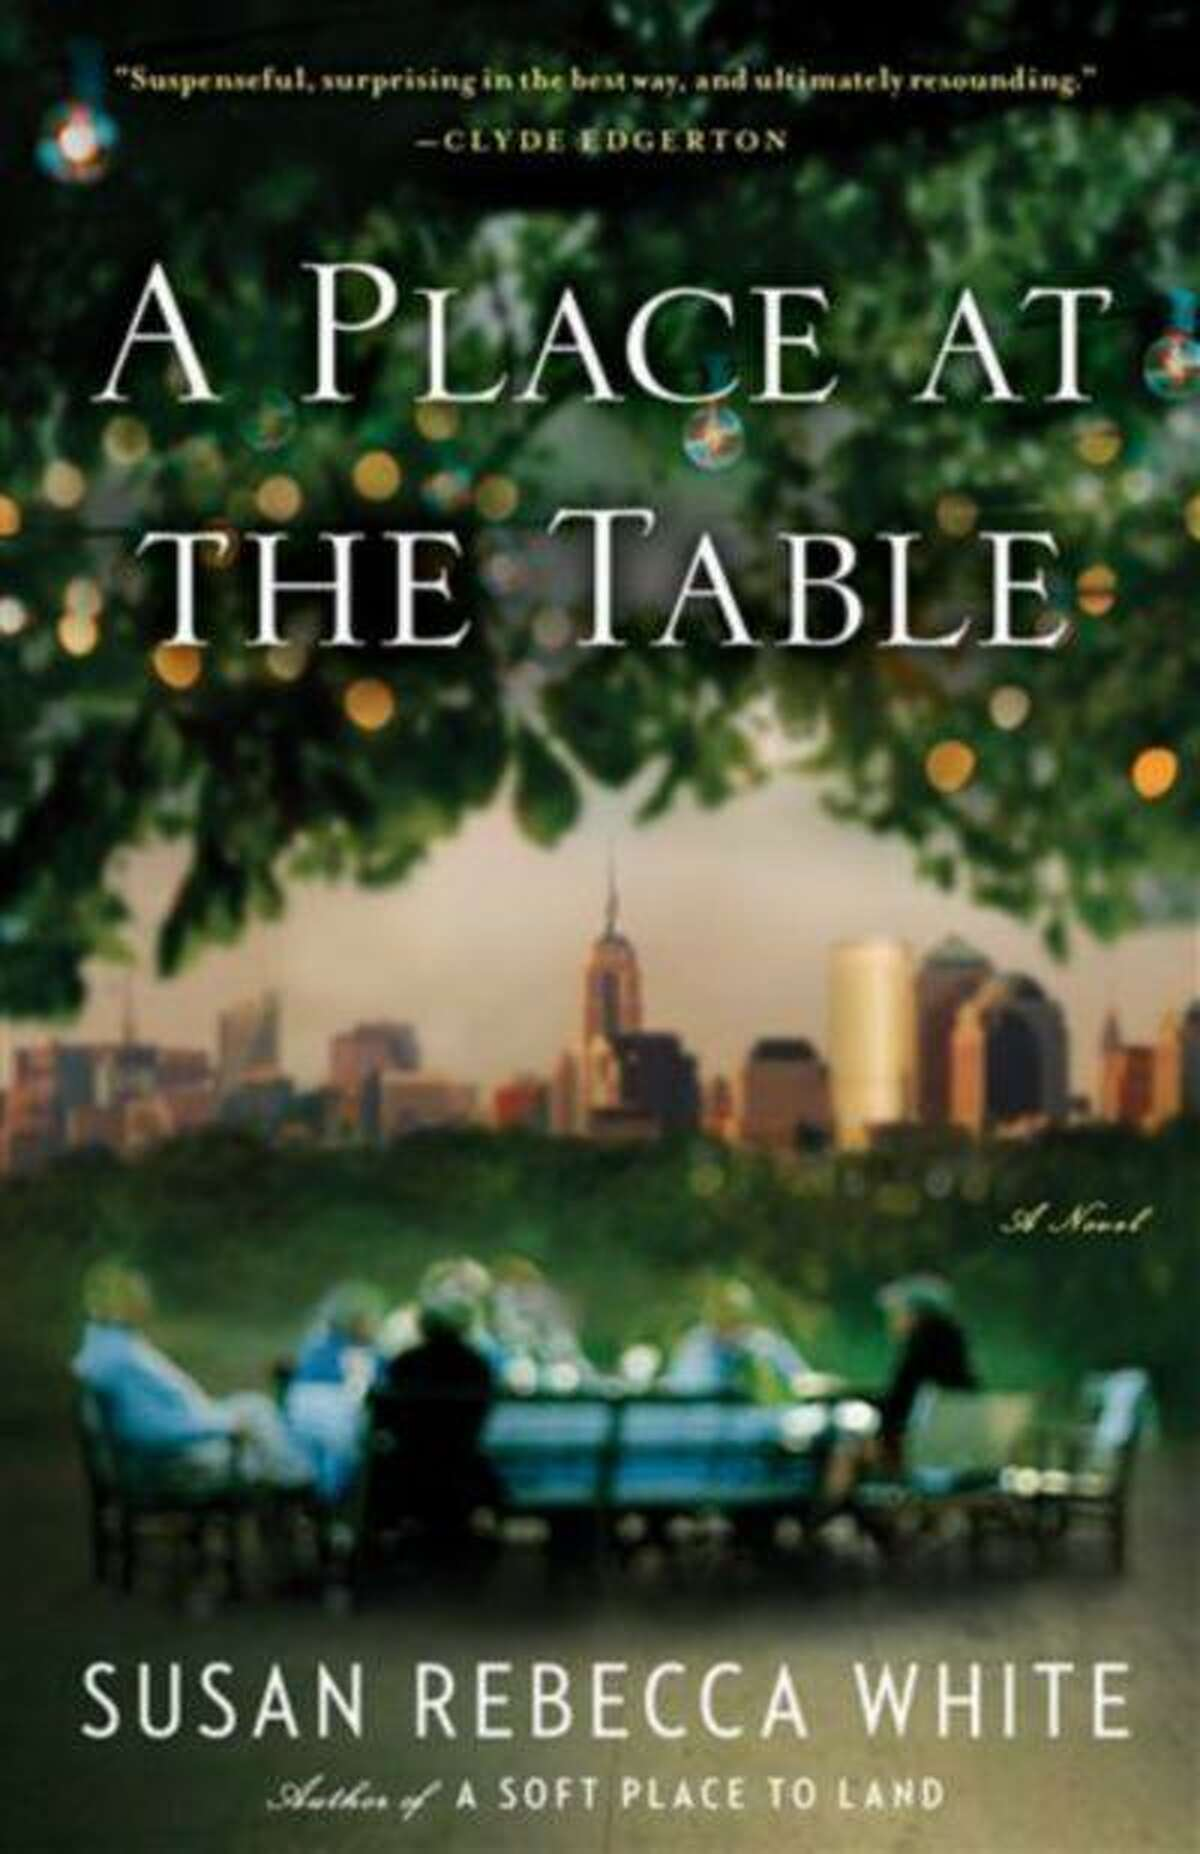 This book cover image released by Touchstone shows